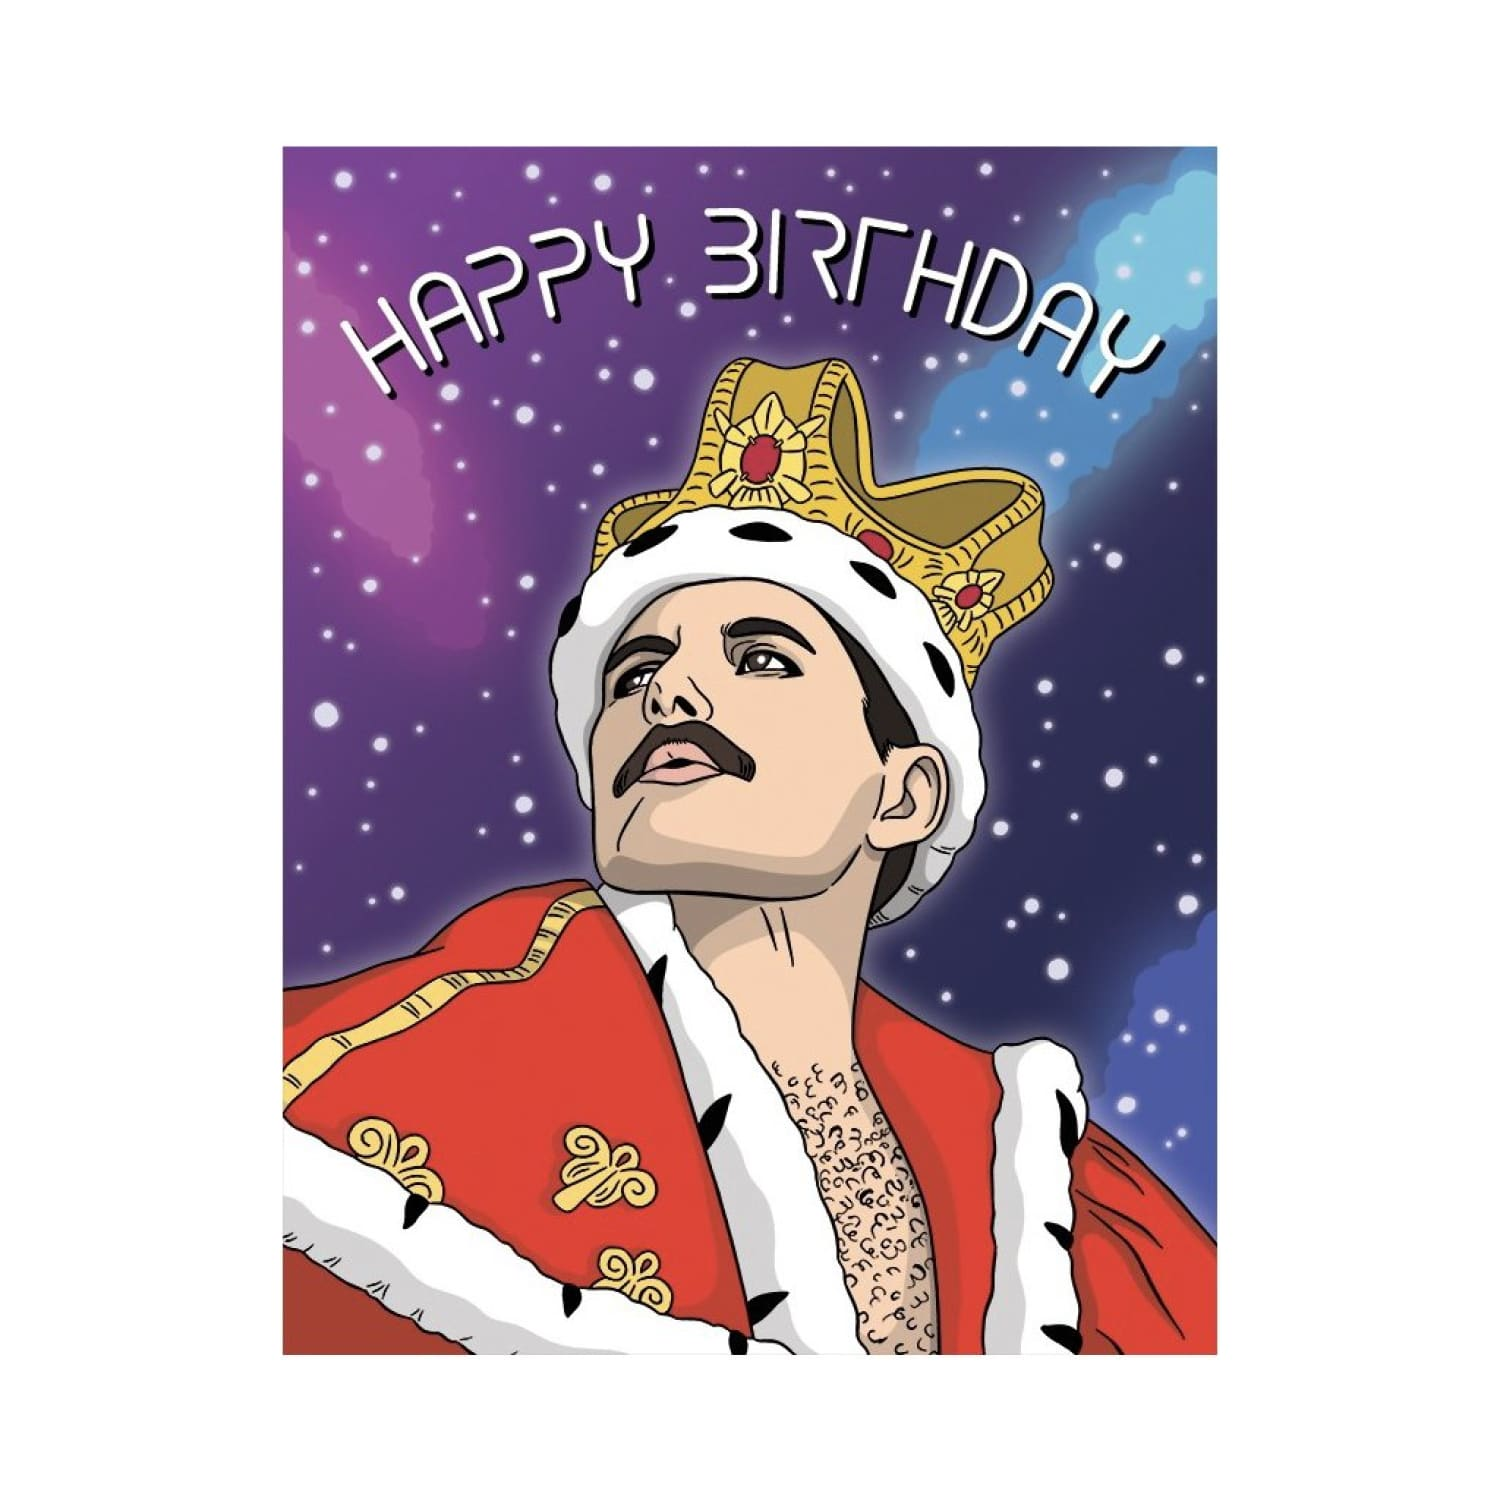 Freddie Mercury Birthday Card Birthday, Birthday Card,